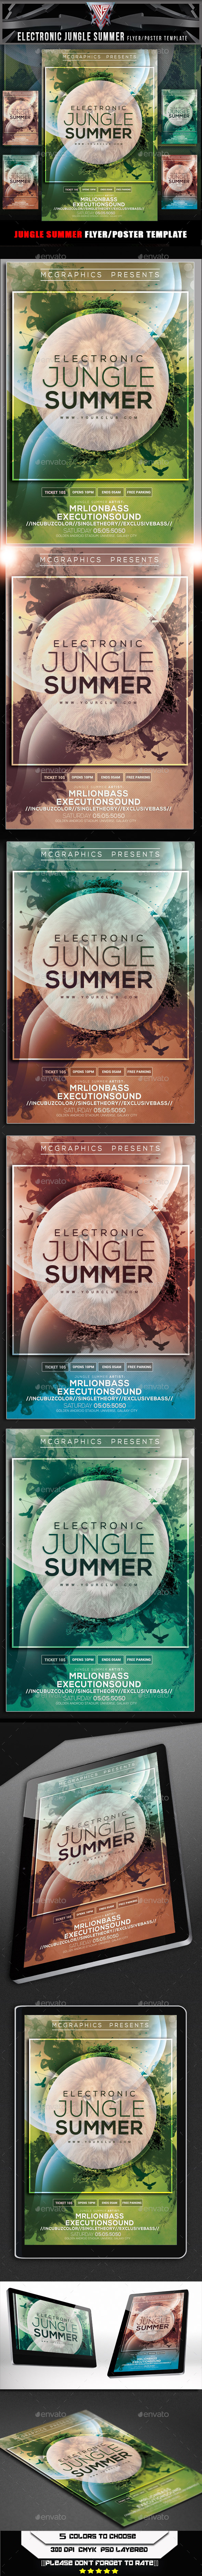 Electronic Jungle Summer Flyer Template